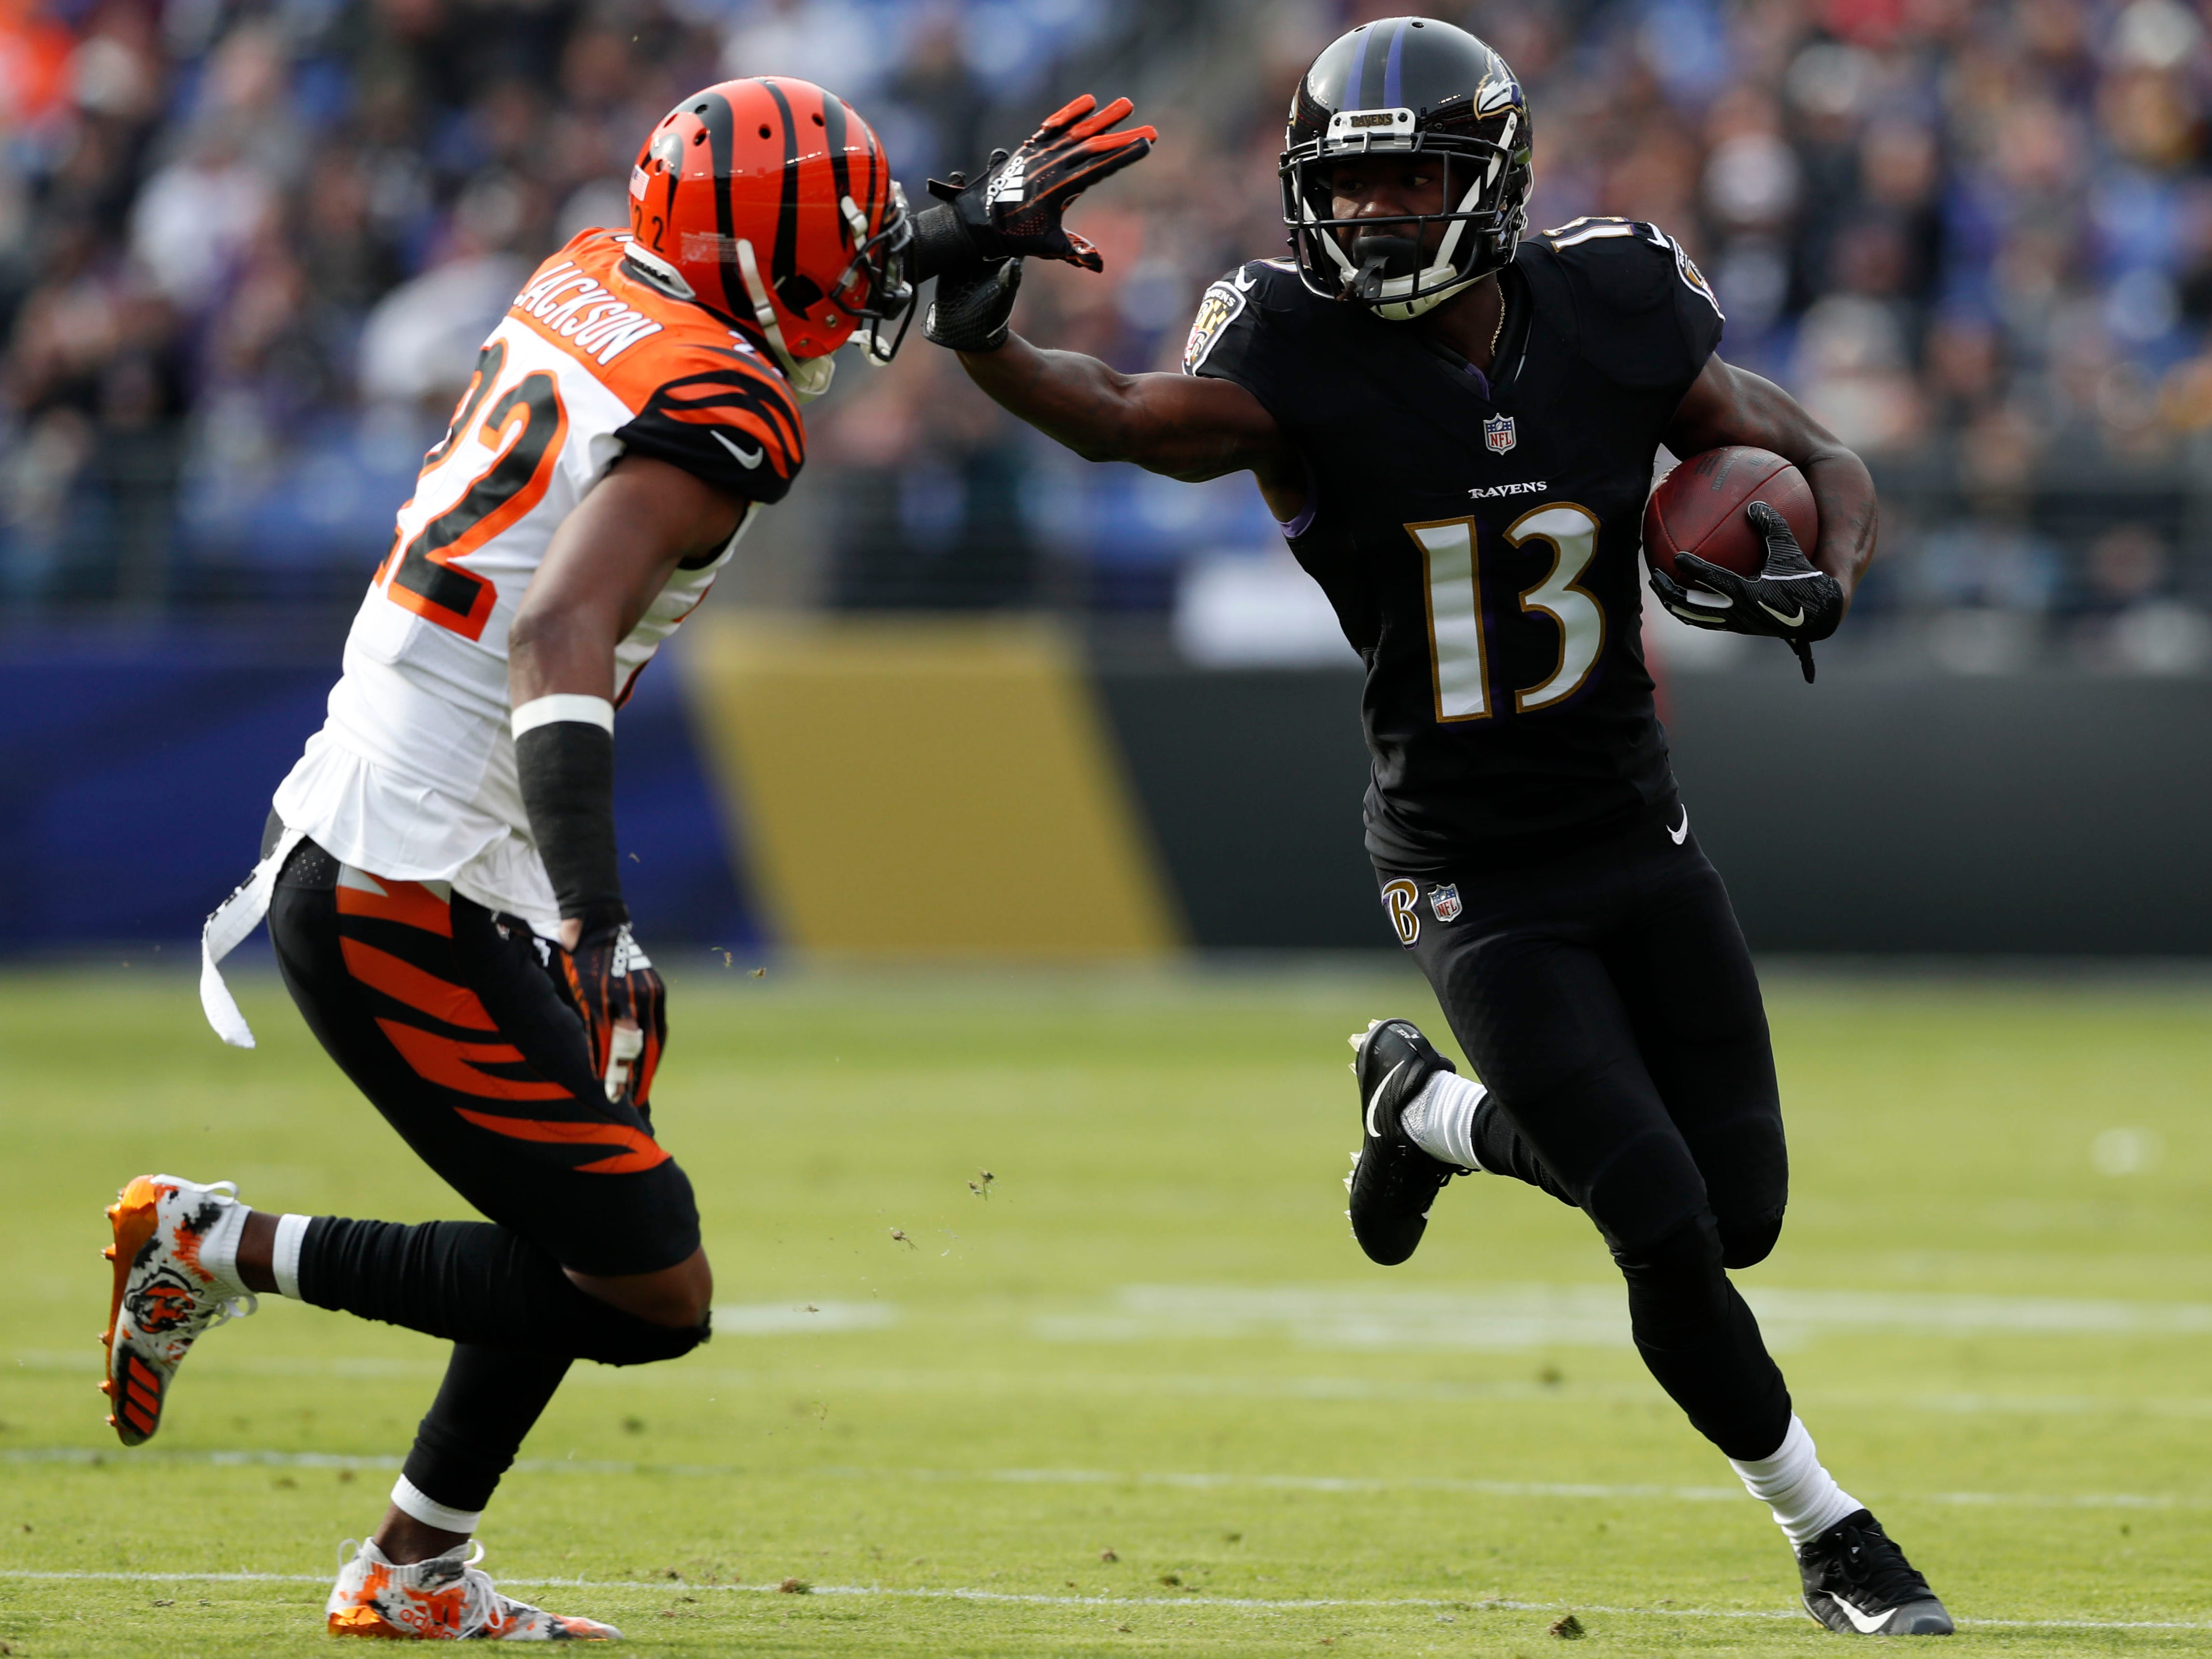 After signing a one-year deal with Baltimore this season, John Brown (13) is looking for a long-term deal. Would he be a good fit in Buffalo?